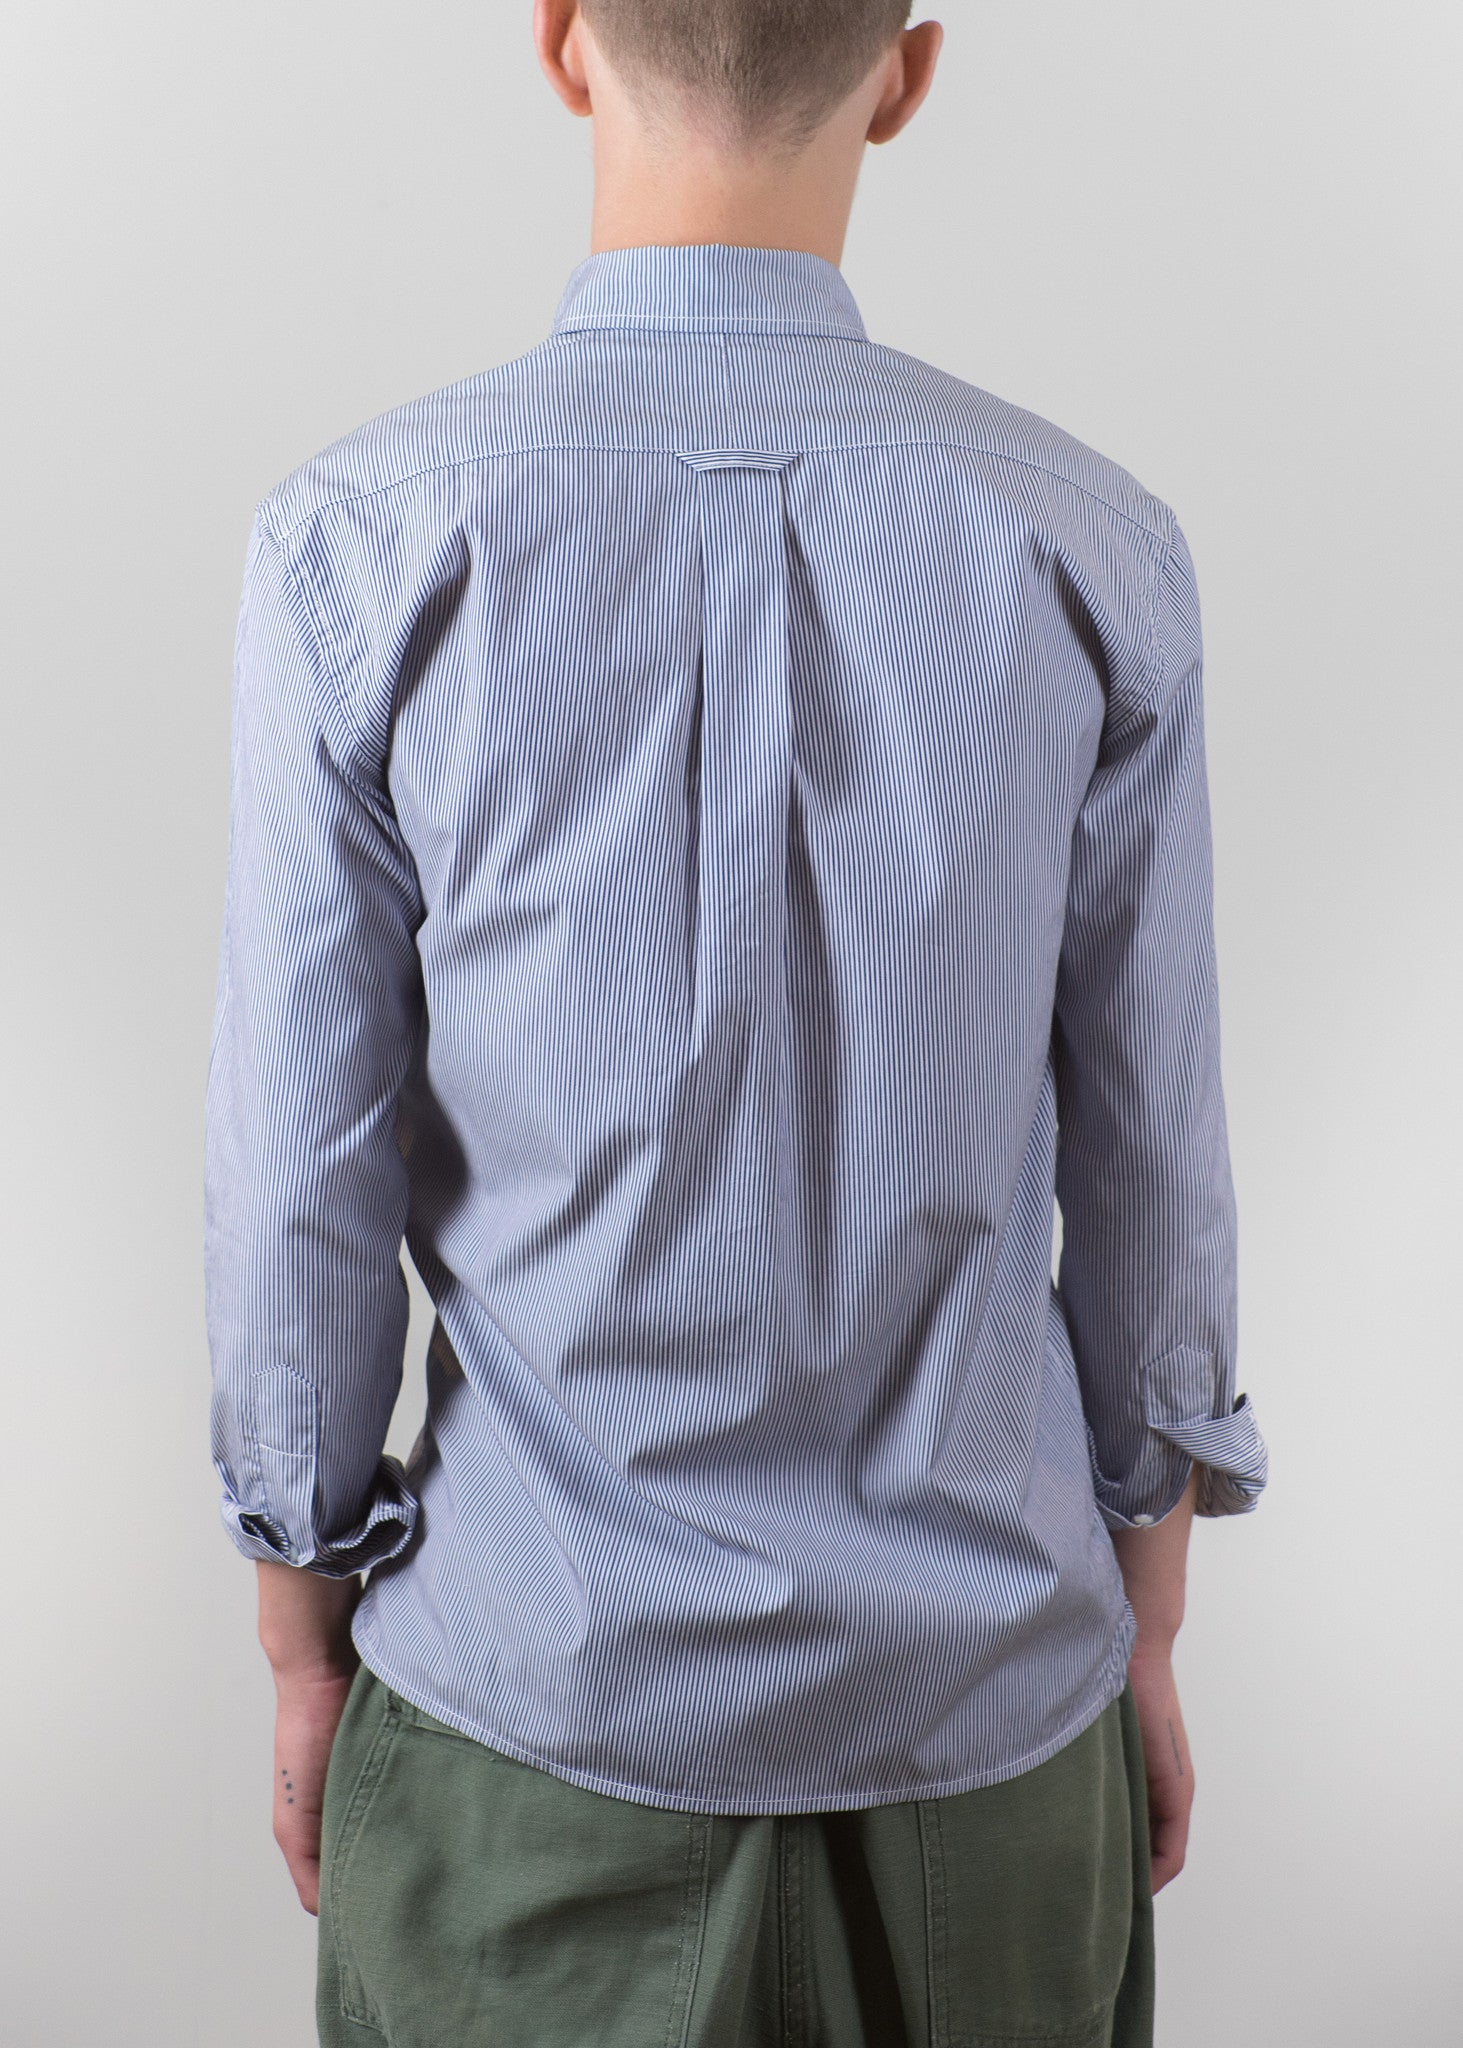 Button Down Collar Shirt - Navy Bengal Stripes - New Union Clothing